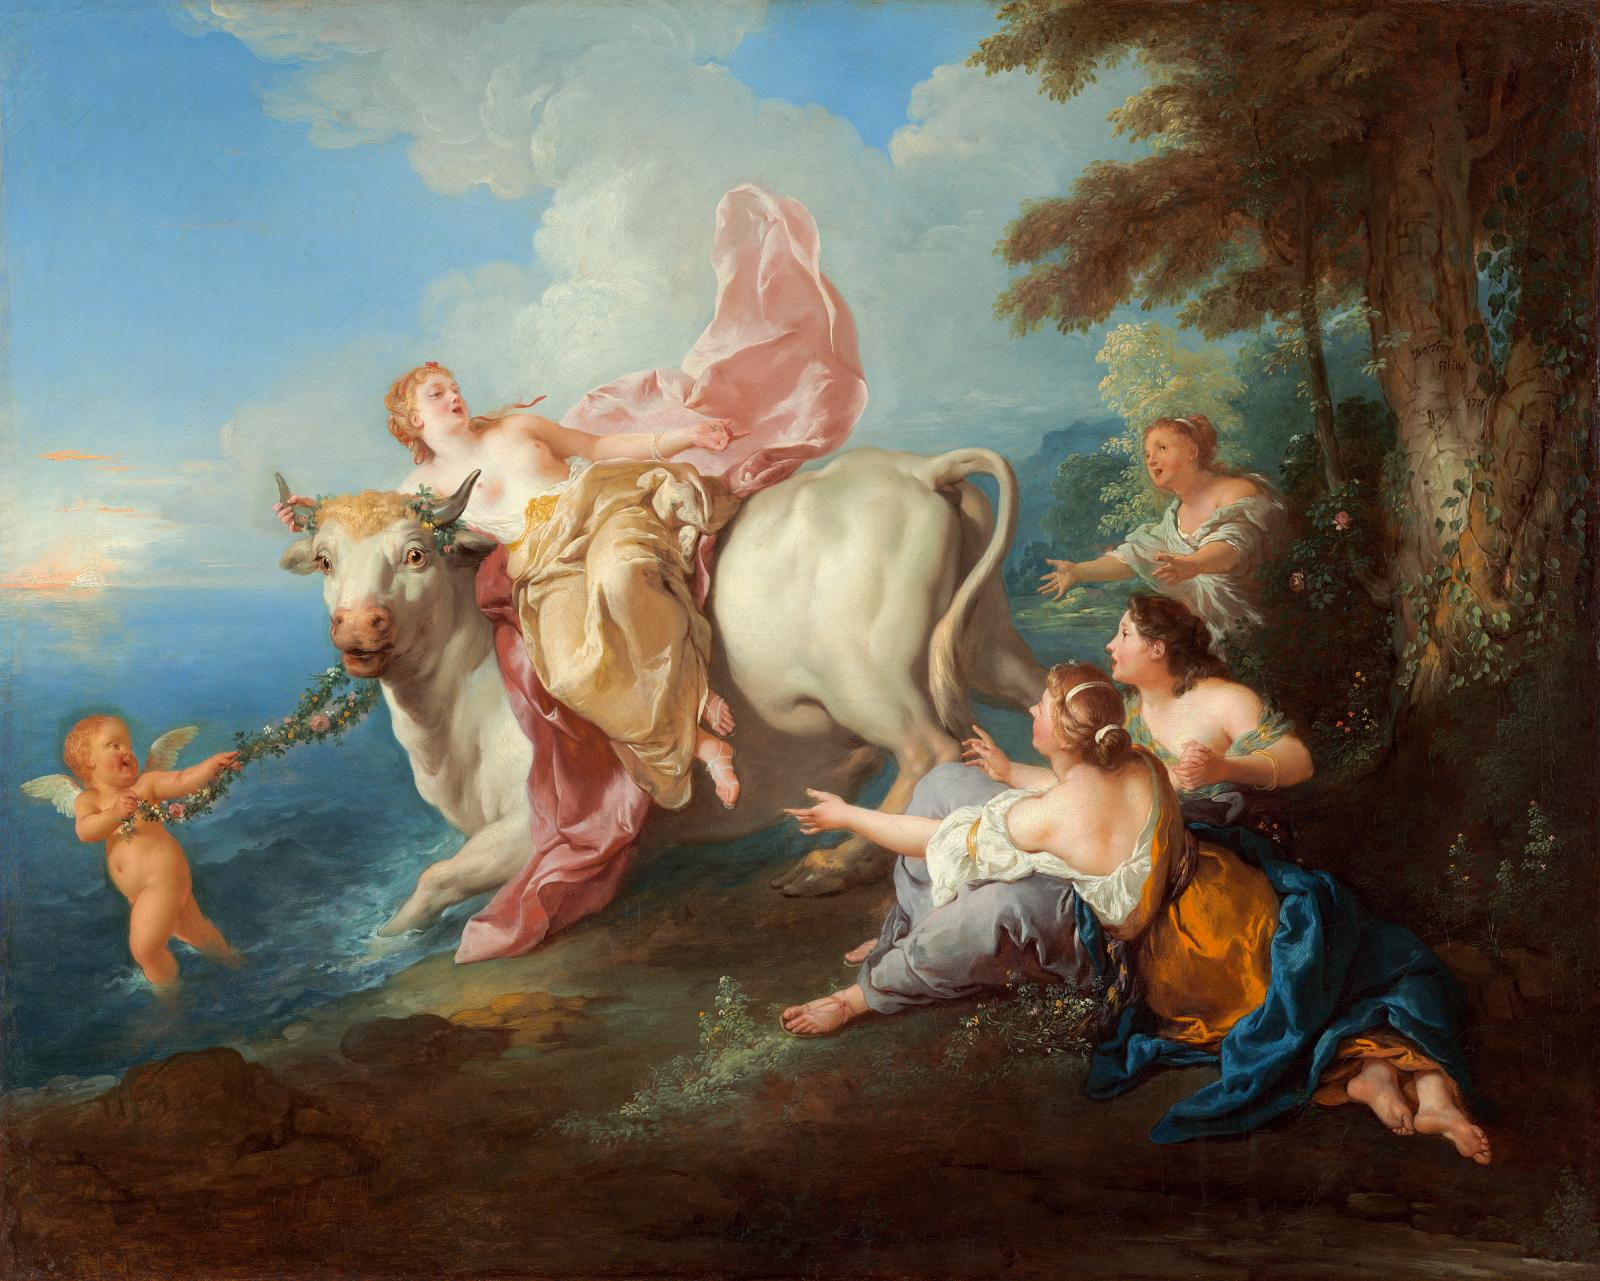 Jean-François de Troy (1679-1752), L'Enlèvement d'Europe (The Abduction of Europa), oil on canvas, 66.5 x 82 cm.Bought by the Washington National Gall